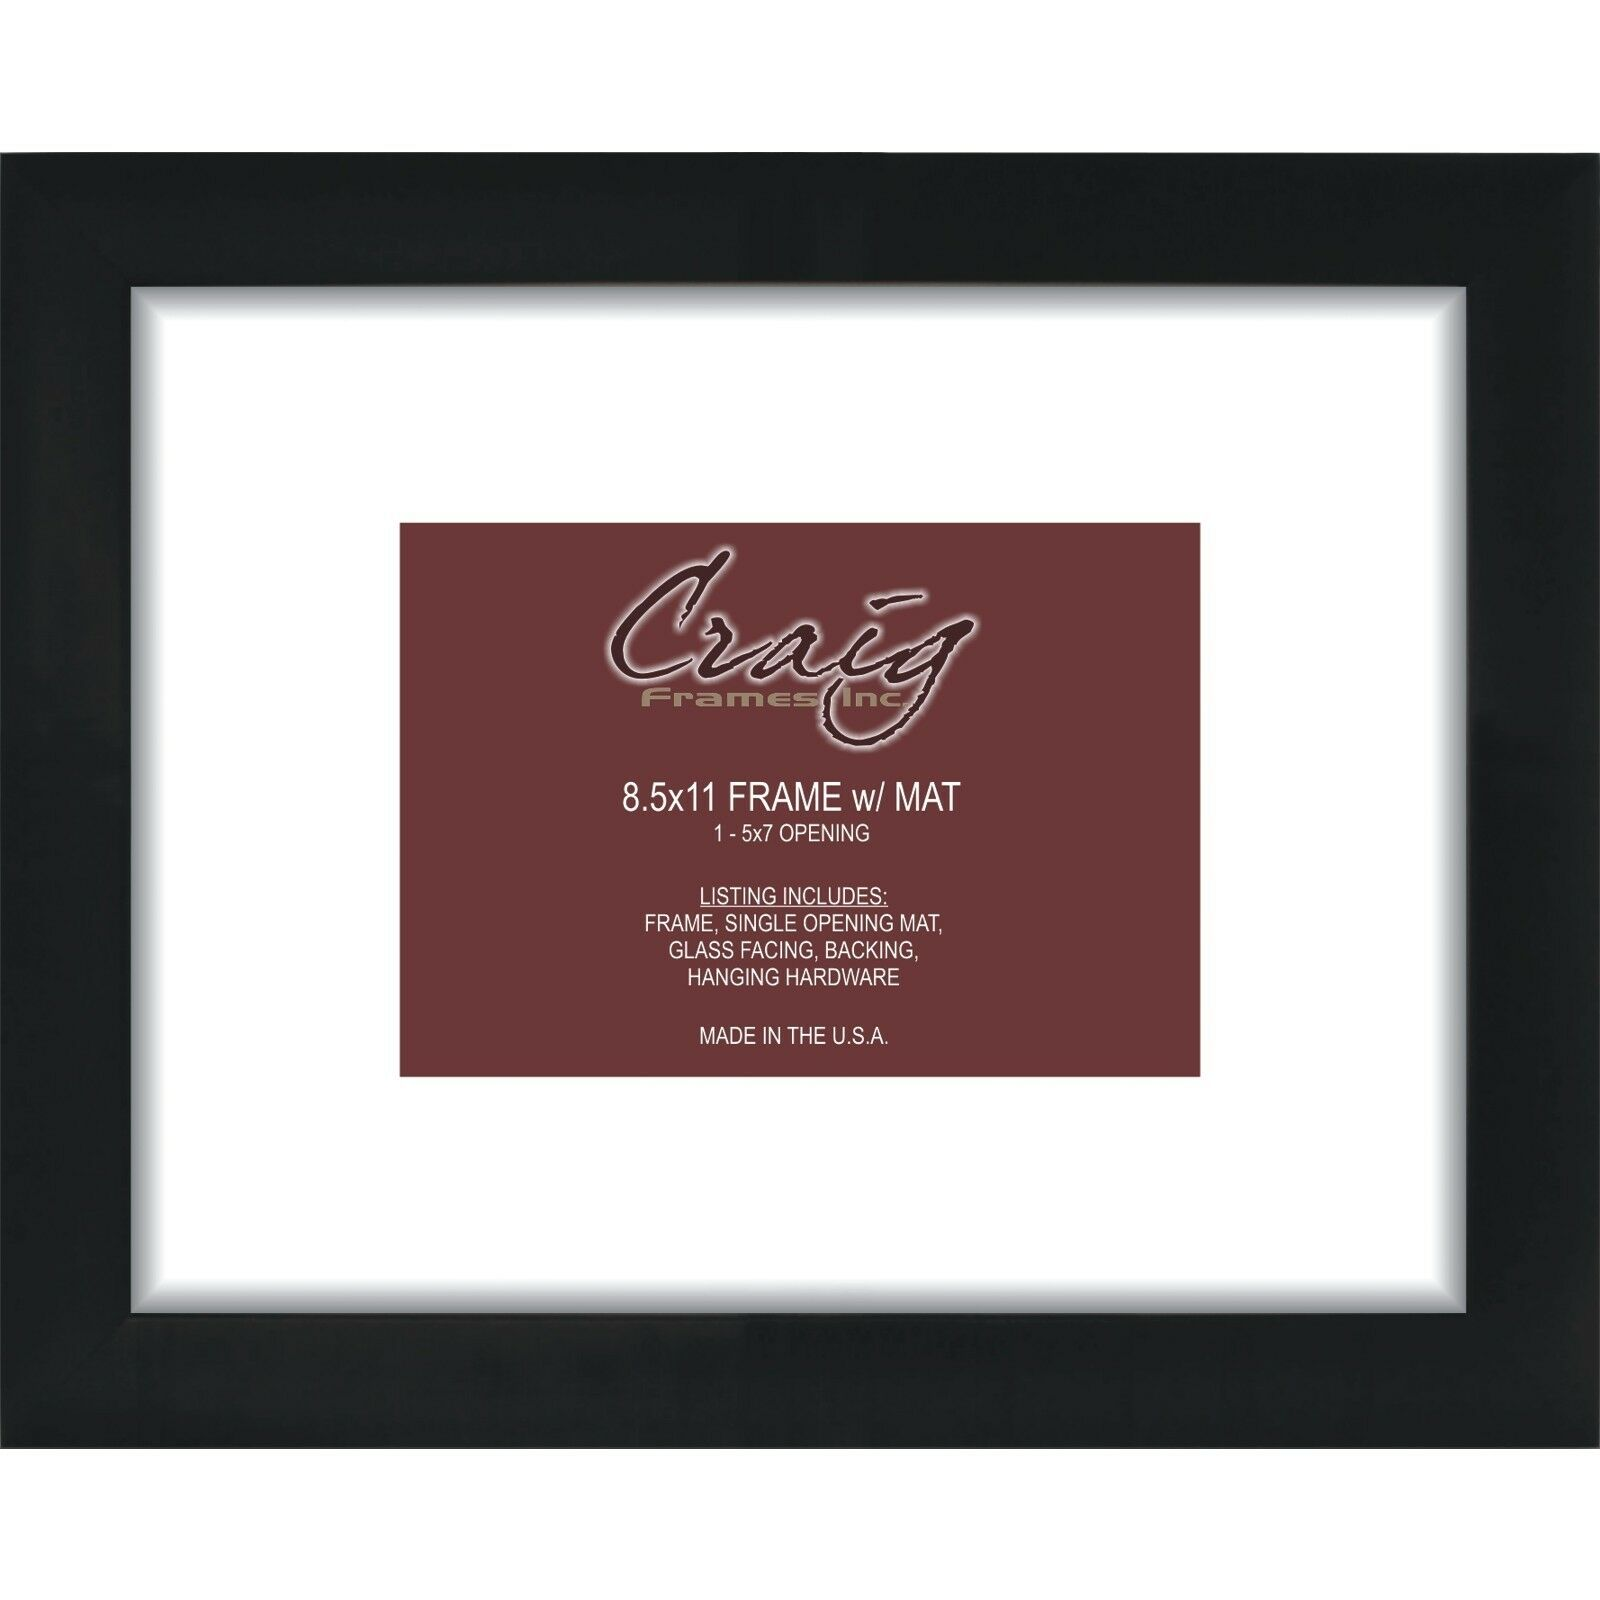 Craig Frames 8.5x11 Black Picture Frame White Mat With Opening for ...